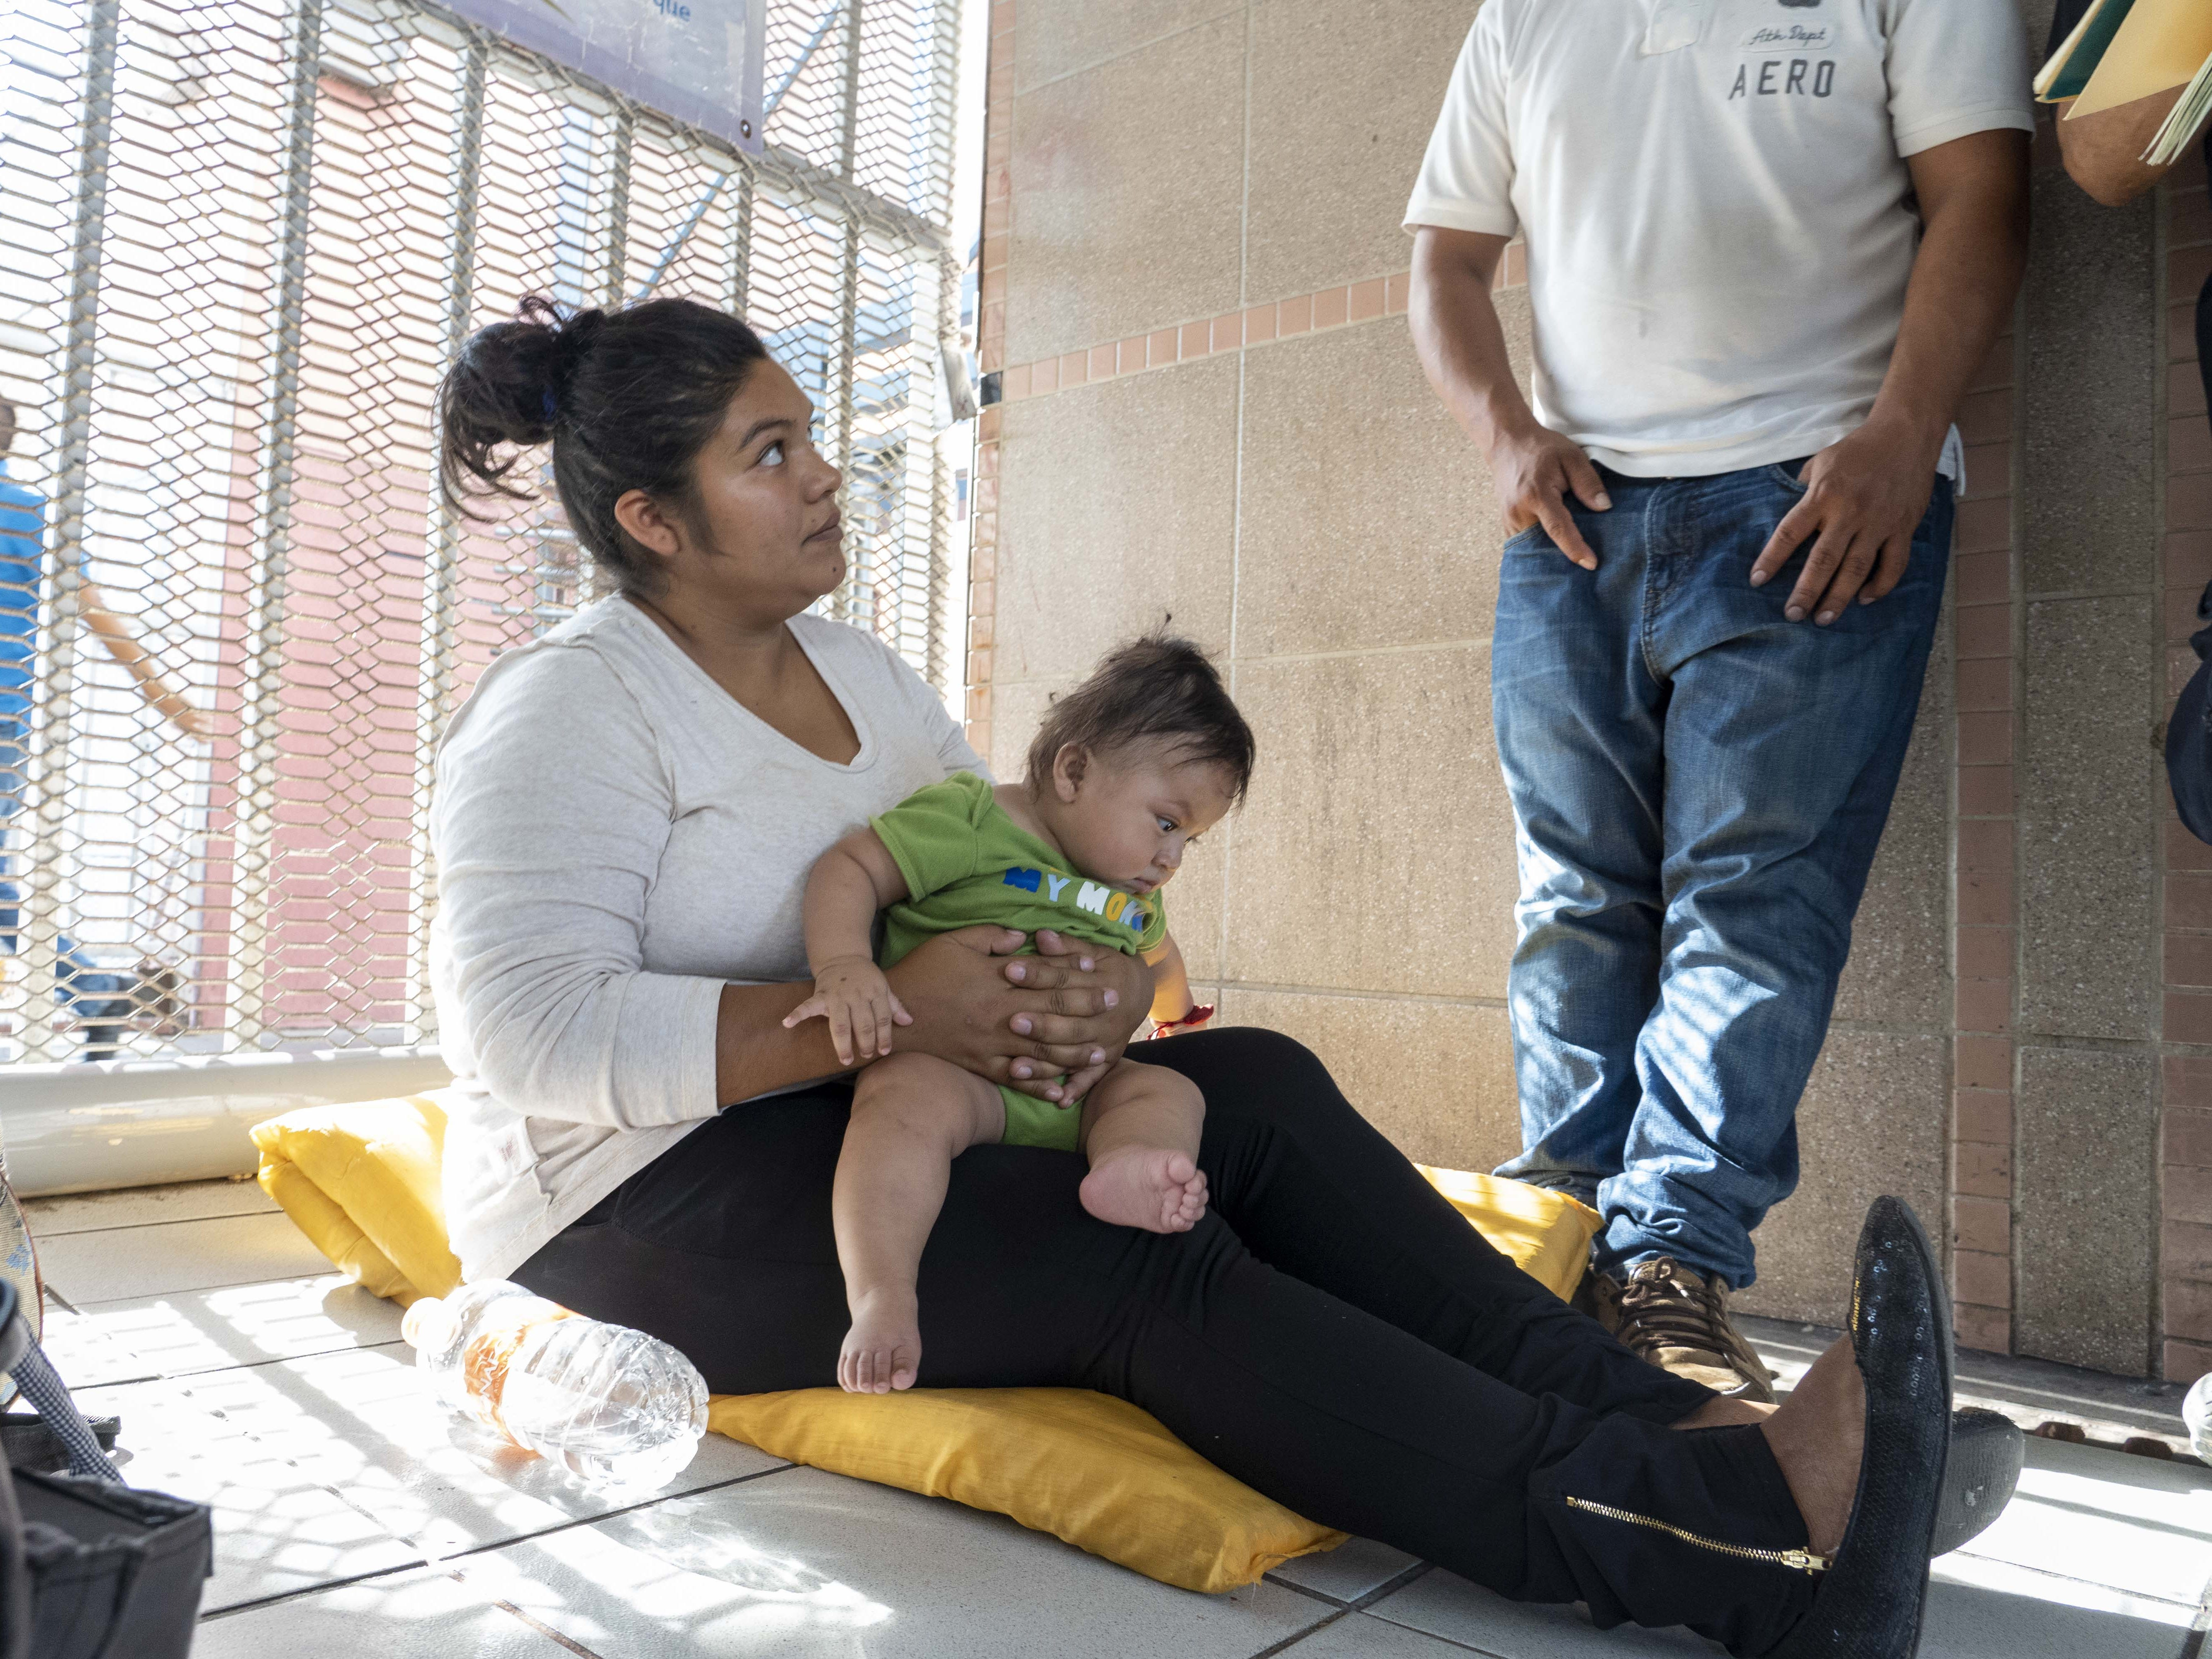 Elation Laguna Flores, Miriam Chino Gonzalez, and their baby, Ivan Laguna,  wait at the DeConcini port of entry. The family from Guerrero, Mexico, were the only ones waiting in line to seek asylum at the border crossing at the time. Customs officers increased the processing of asylum seekers in Nogales, clearing the lengthy queue in a matter of days.